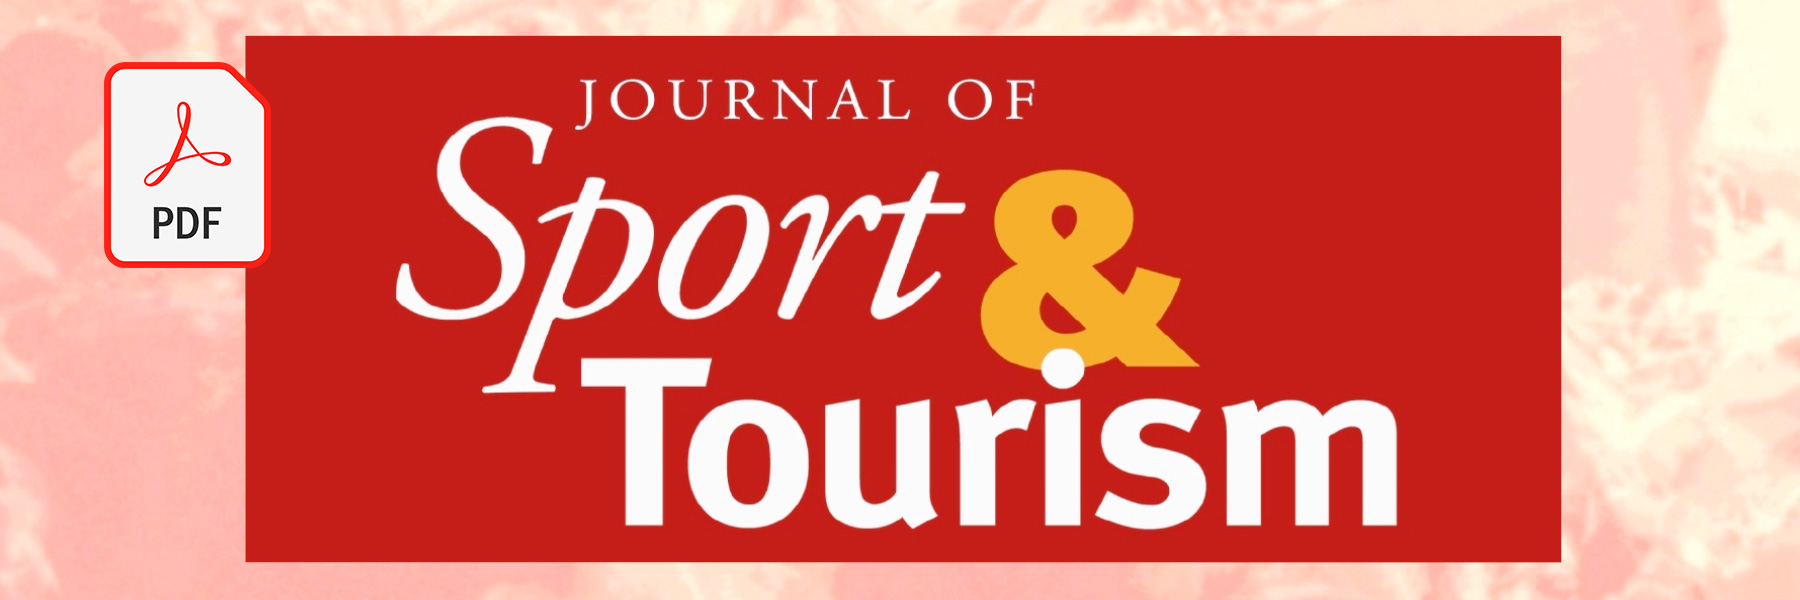 Dr Steven A Martin | Genesis of a new body of sport tourism literature | Systematic review of surf tourism research | Journal of Sport and Tourism